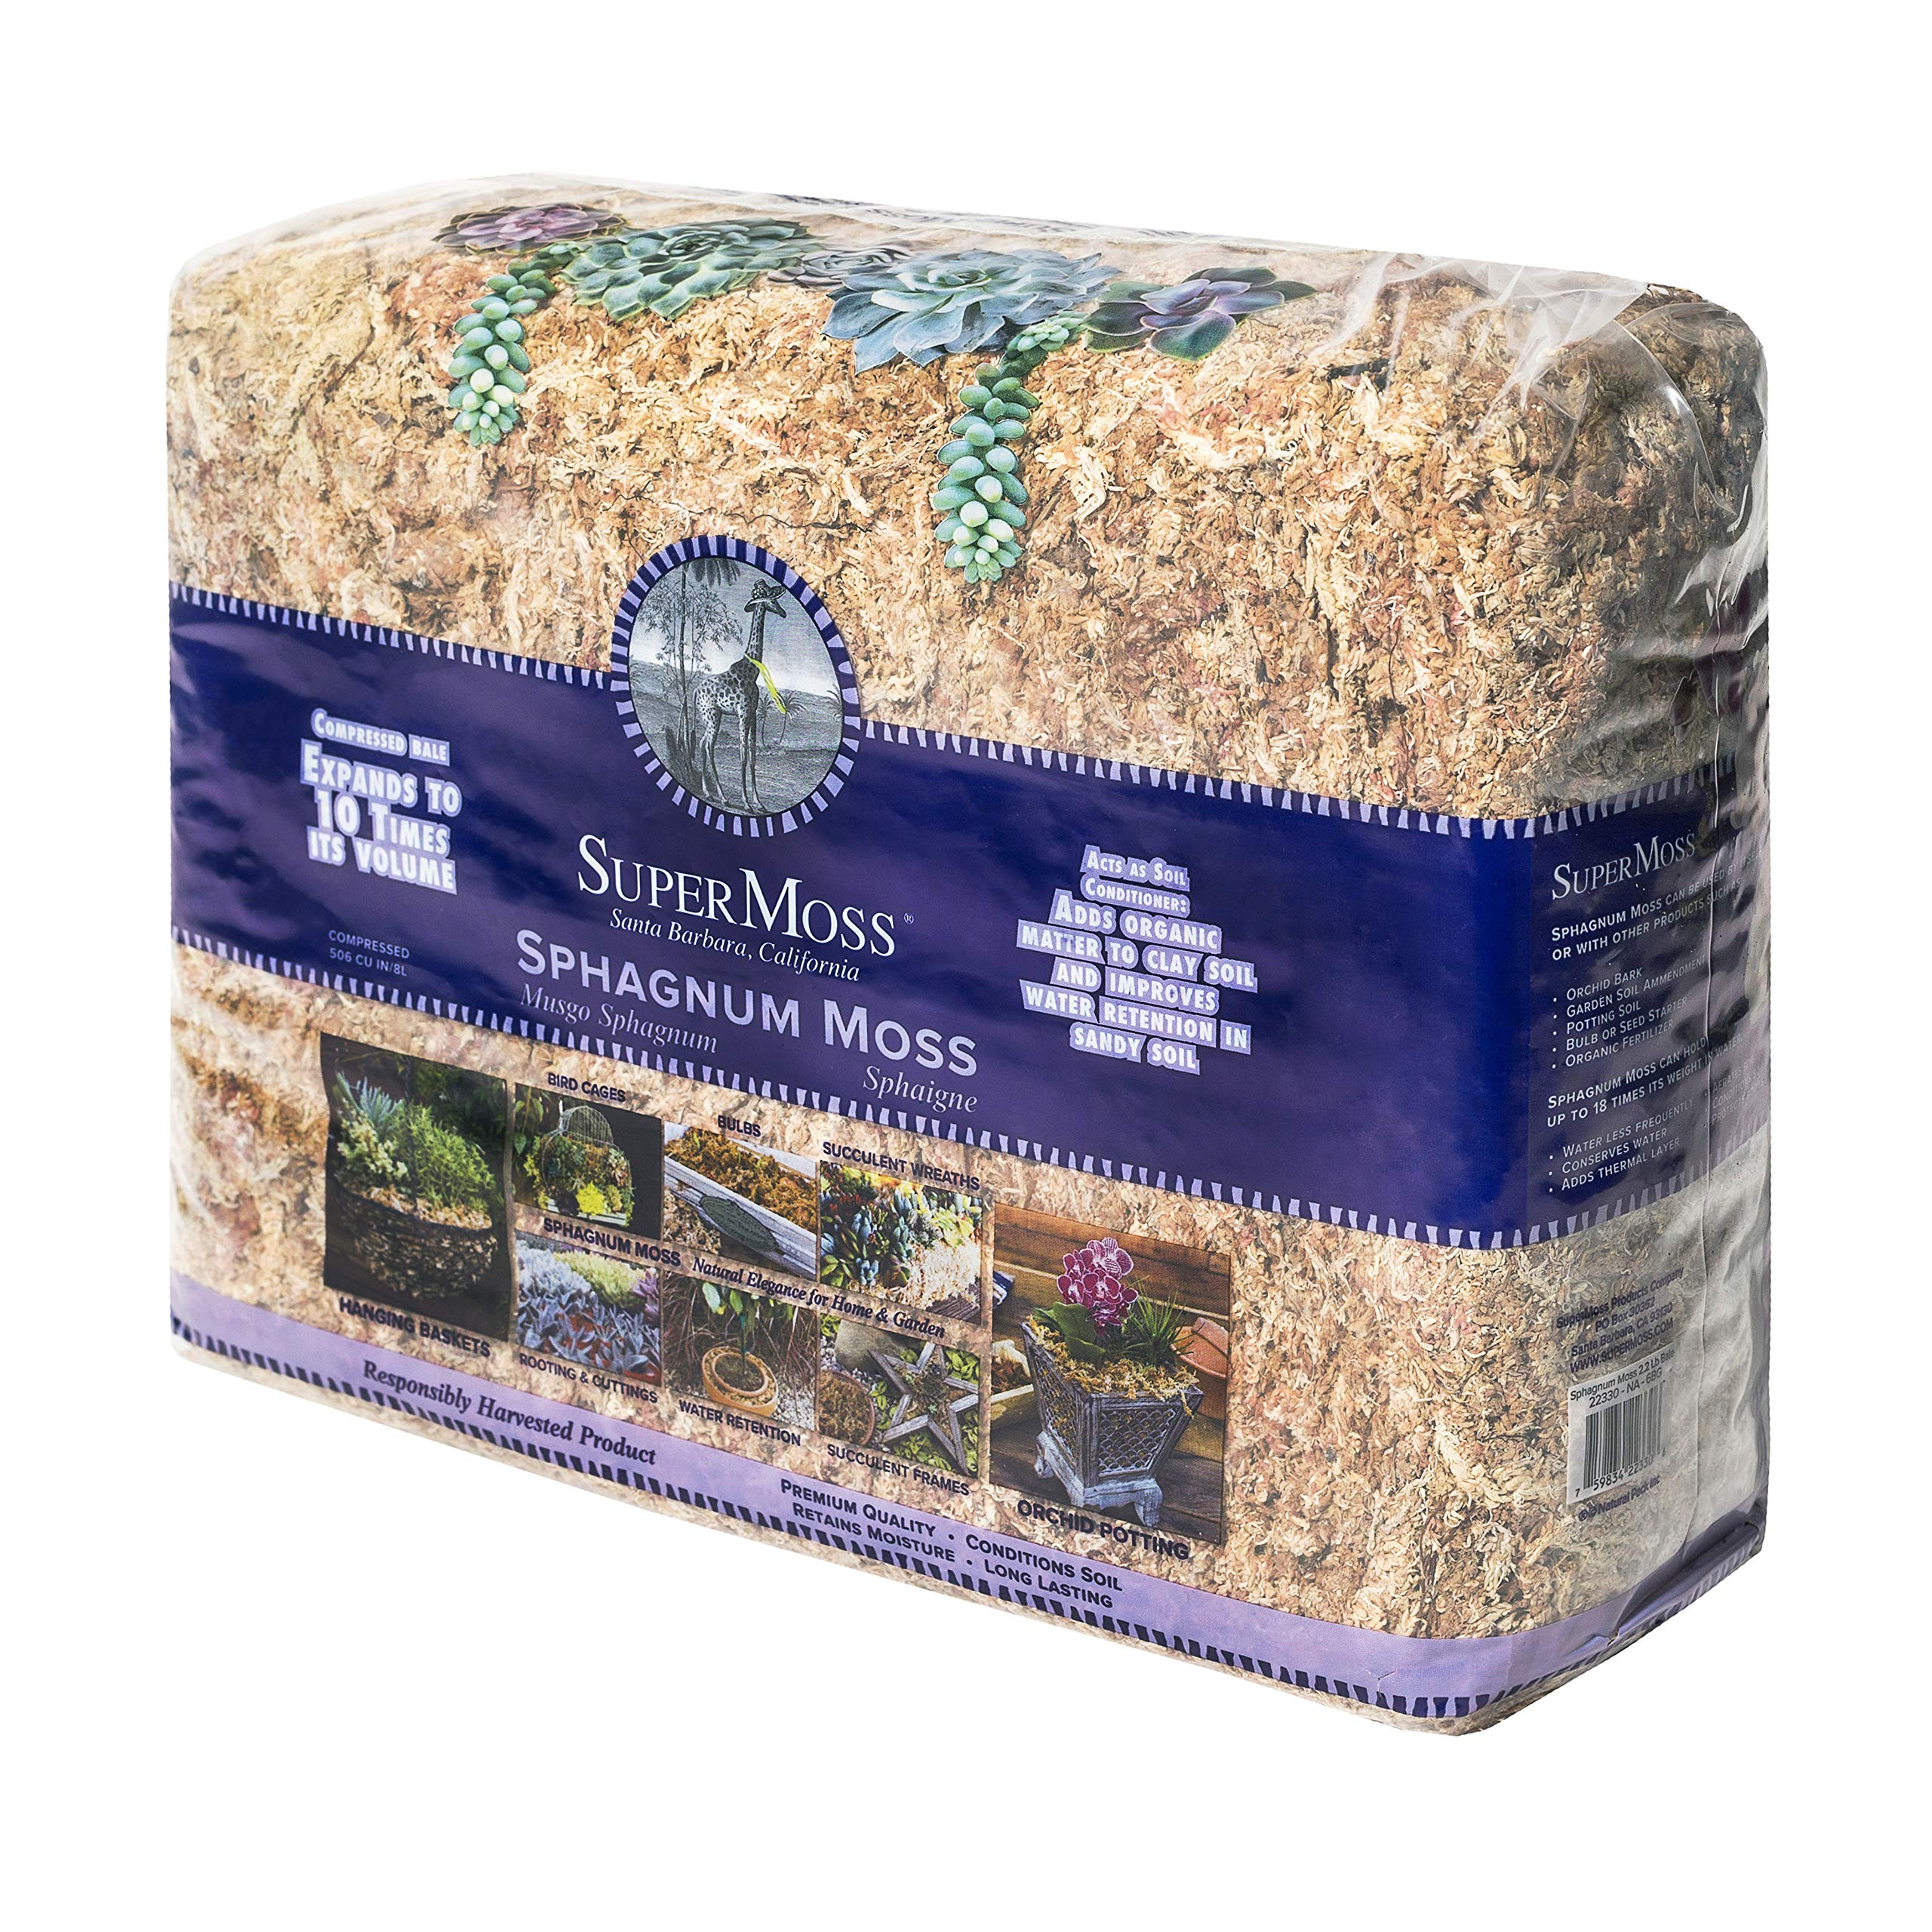 SuperMoss (22330) Orchid Sphagnum Moss Dried, Natural, 2.4lbs Small Bale